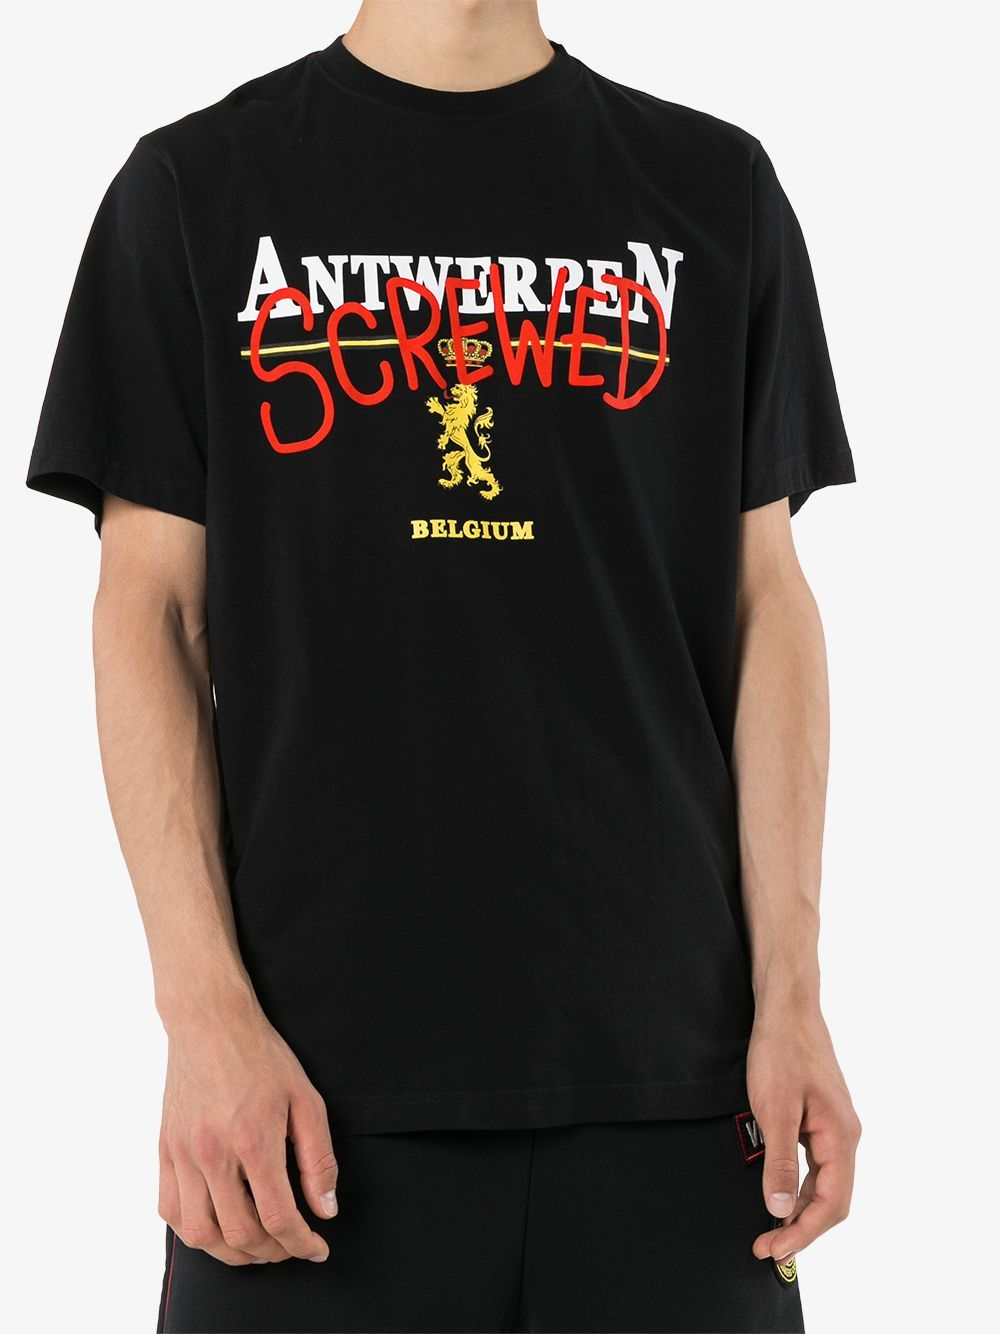 VETEMENTS Antwerp T-Shirt Black - Maison De Fashion